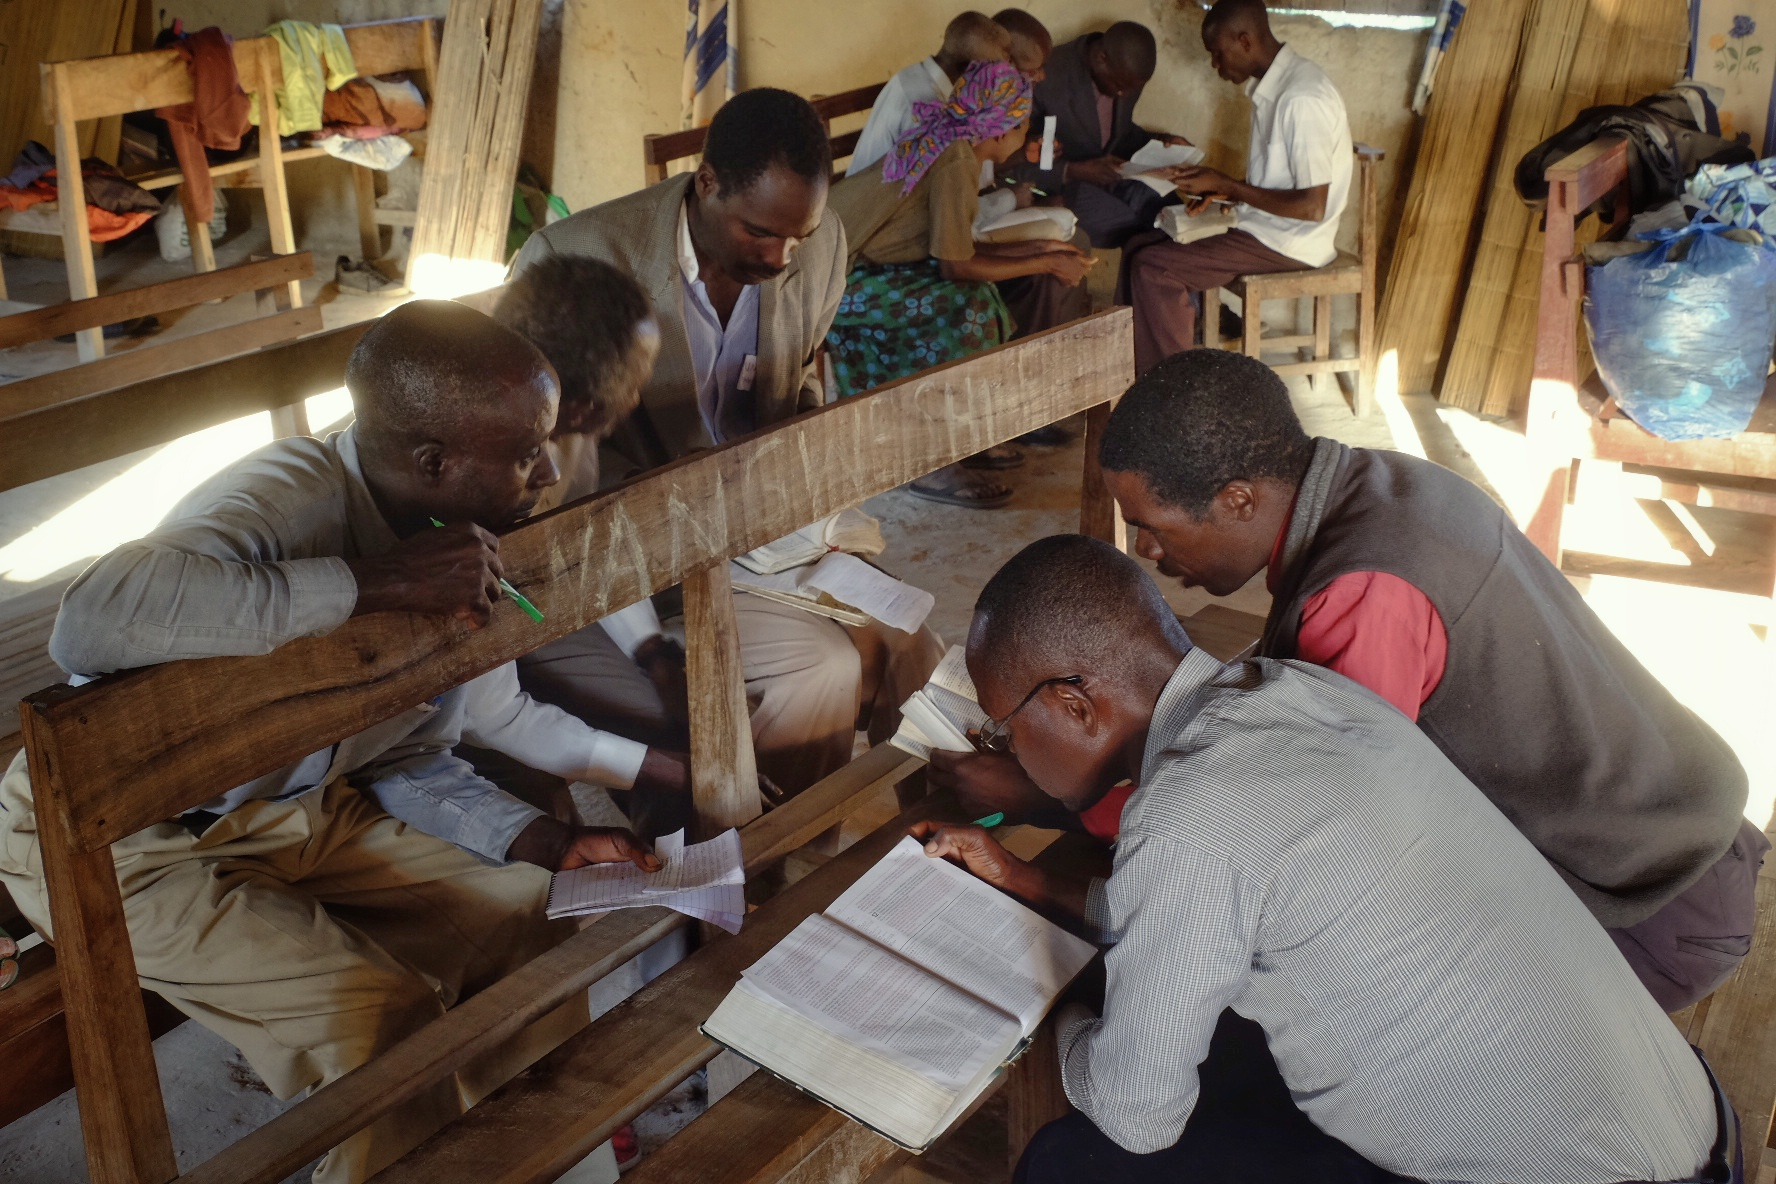 Students in Nangweshi, Zambia share Bibles as they search the Scriptures in a break out session.